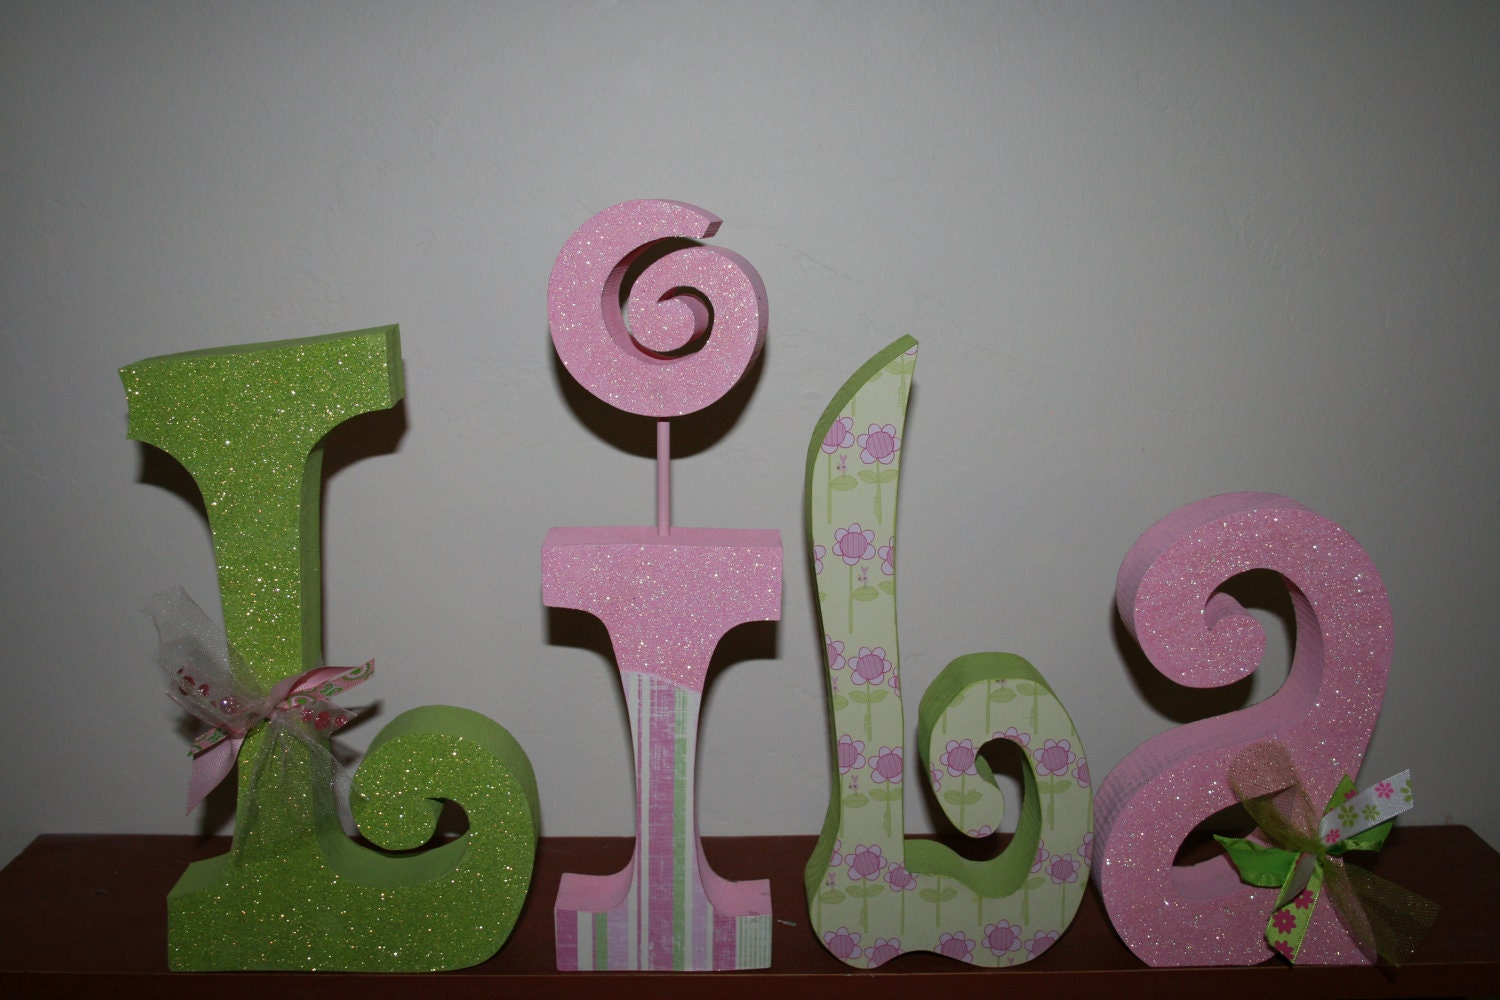 Custom wood letters nursery letters girl nursery letters kids room ...